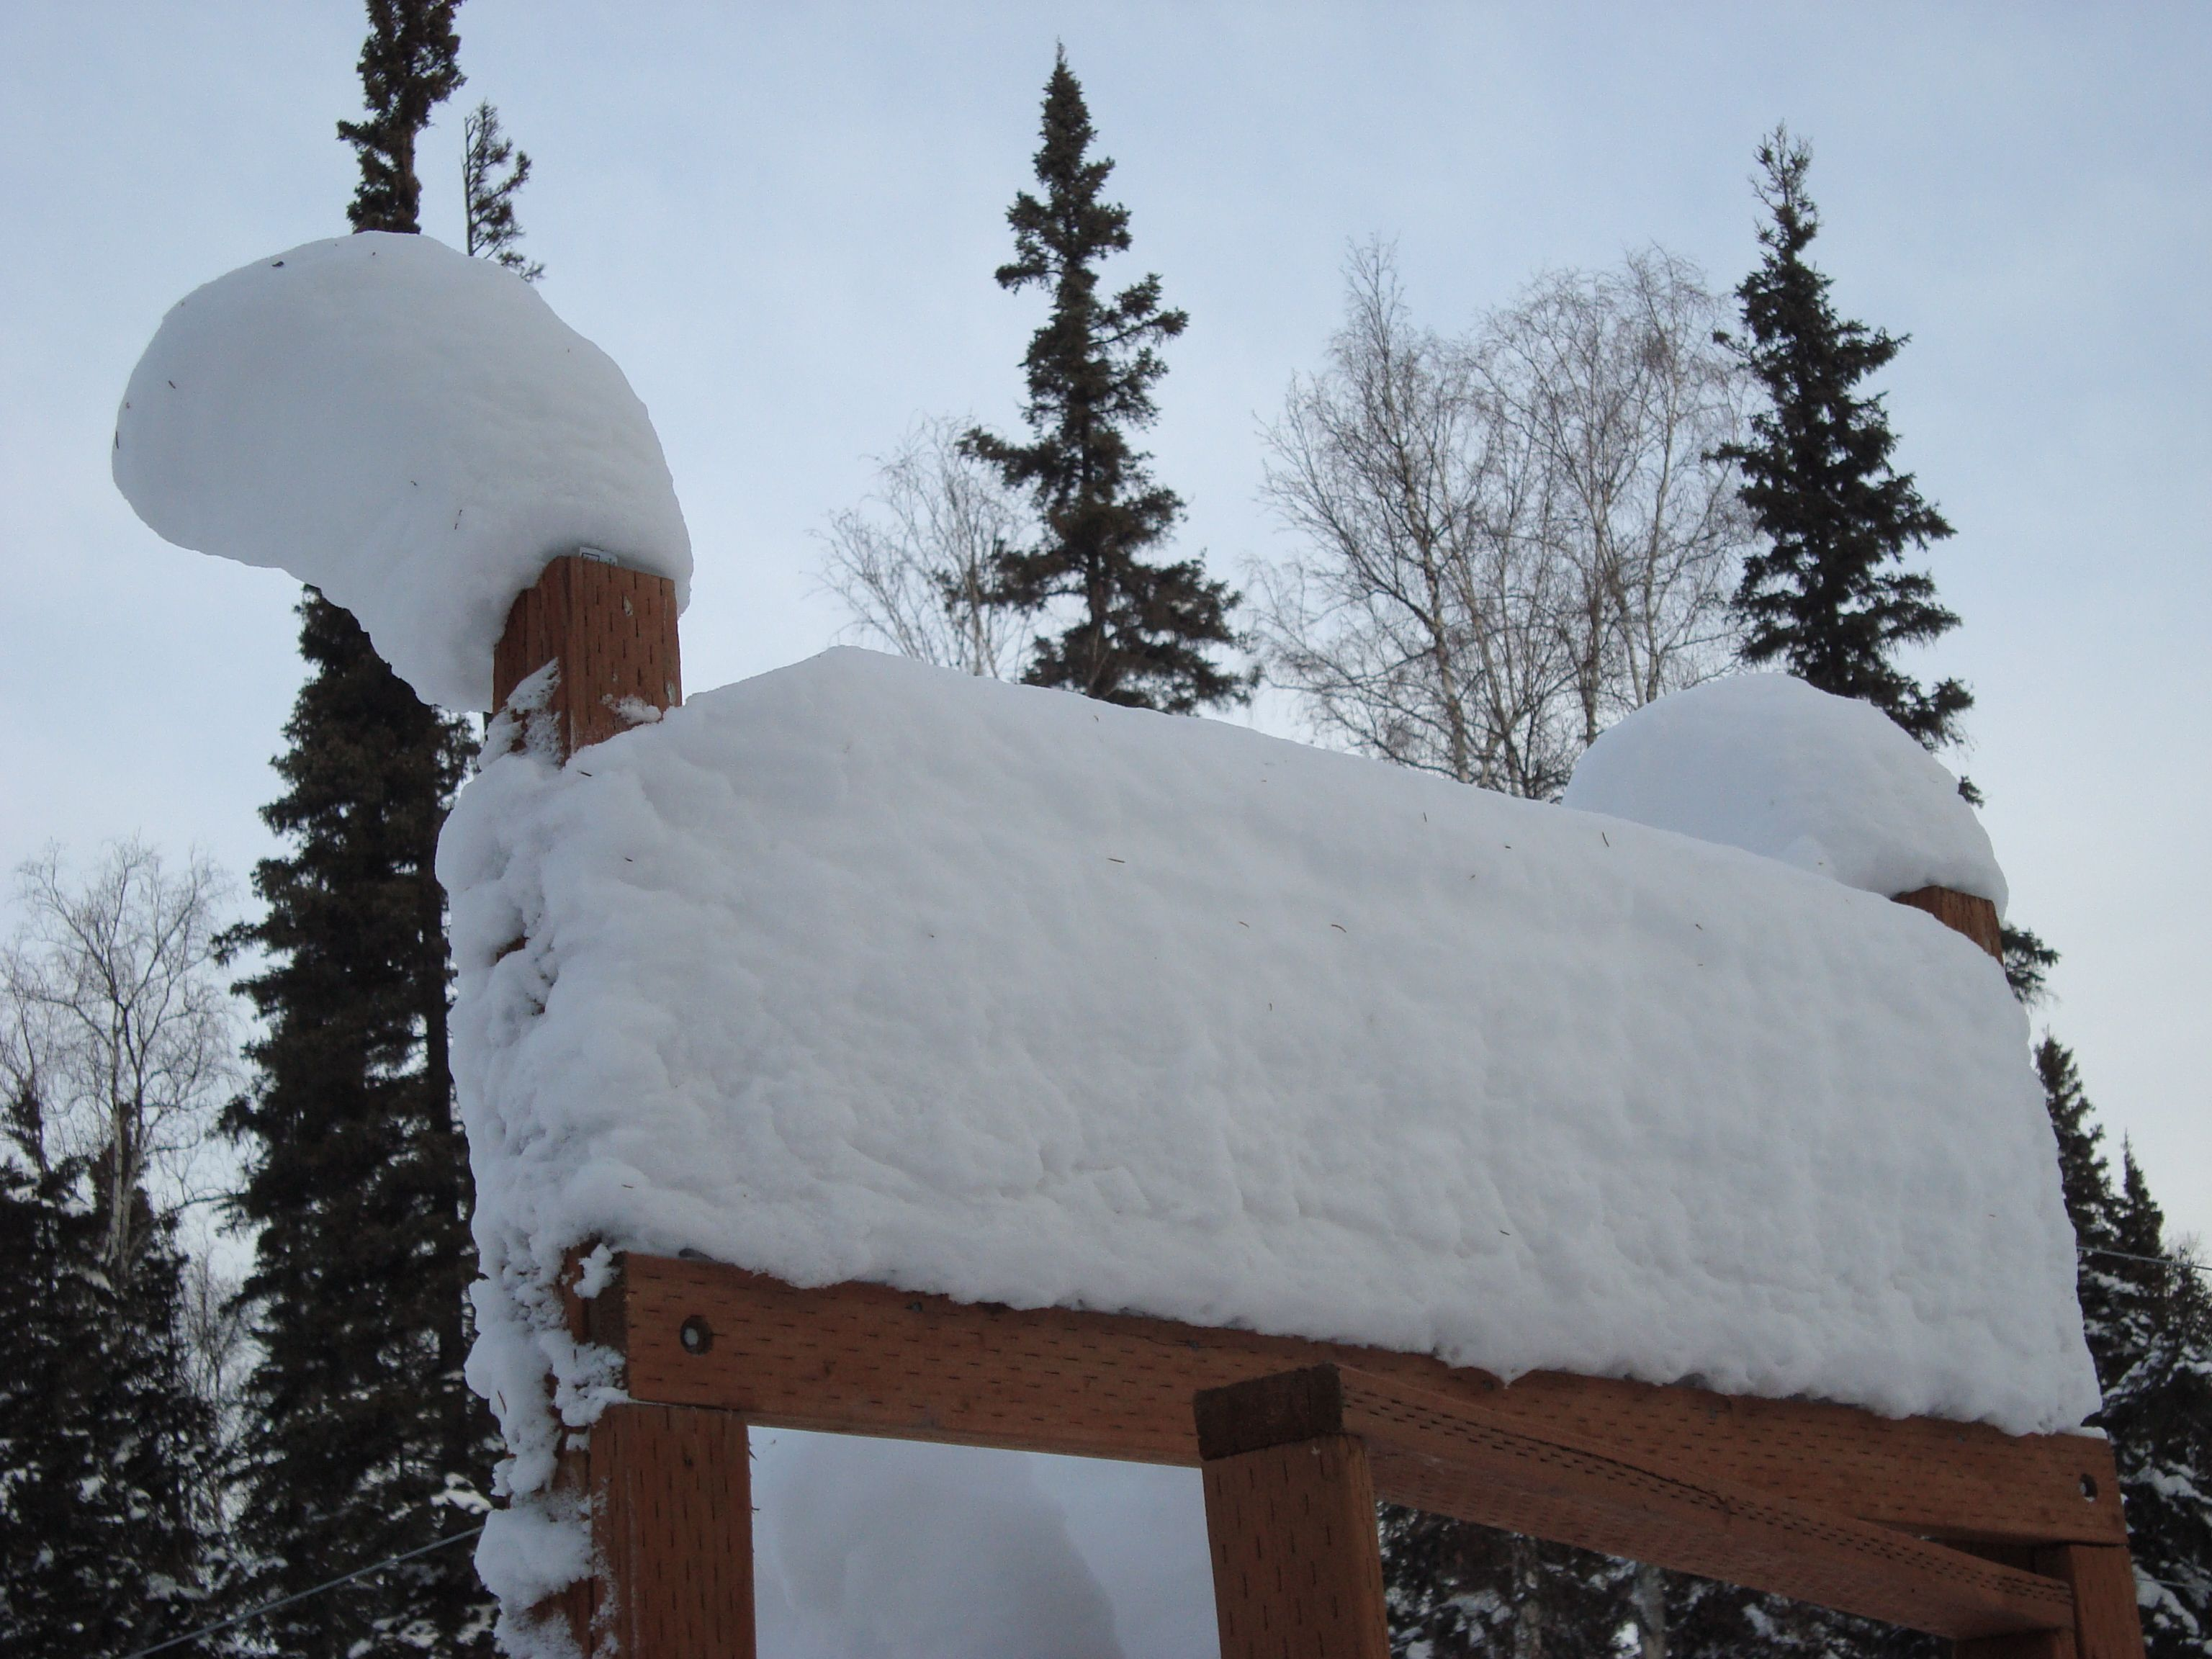 snow build up on our garden fence posts over the course of the